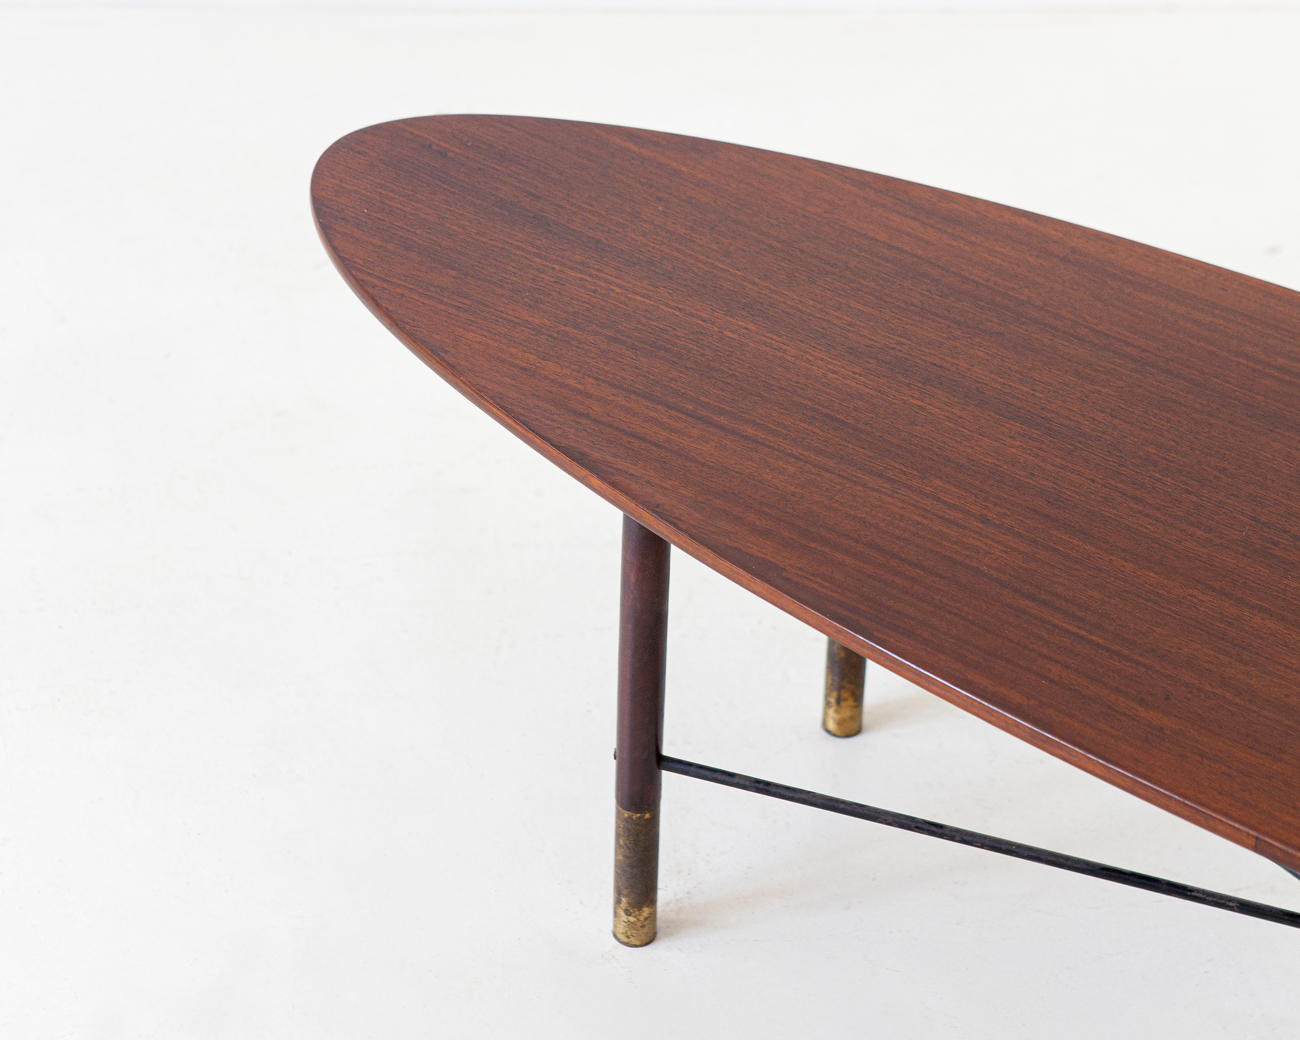 1950s-dark-teak-and-brass-elliptical-coffee-table-1-t90